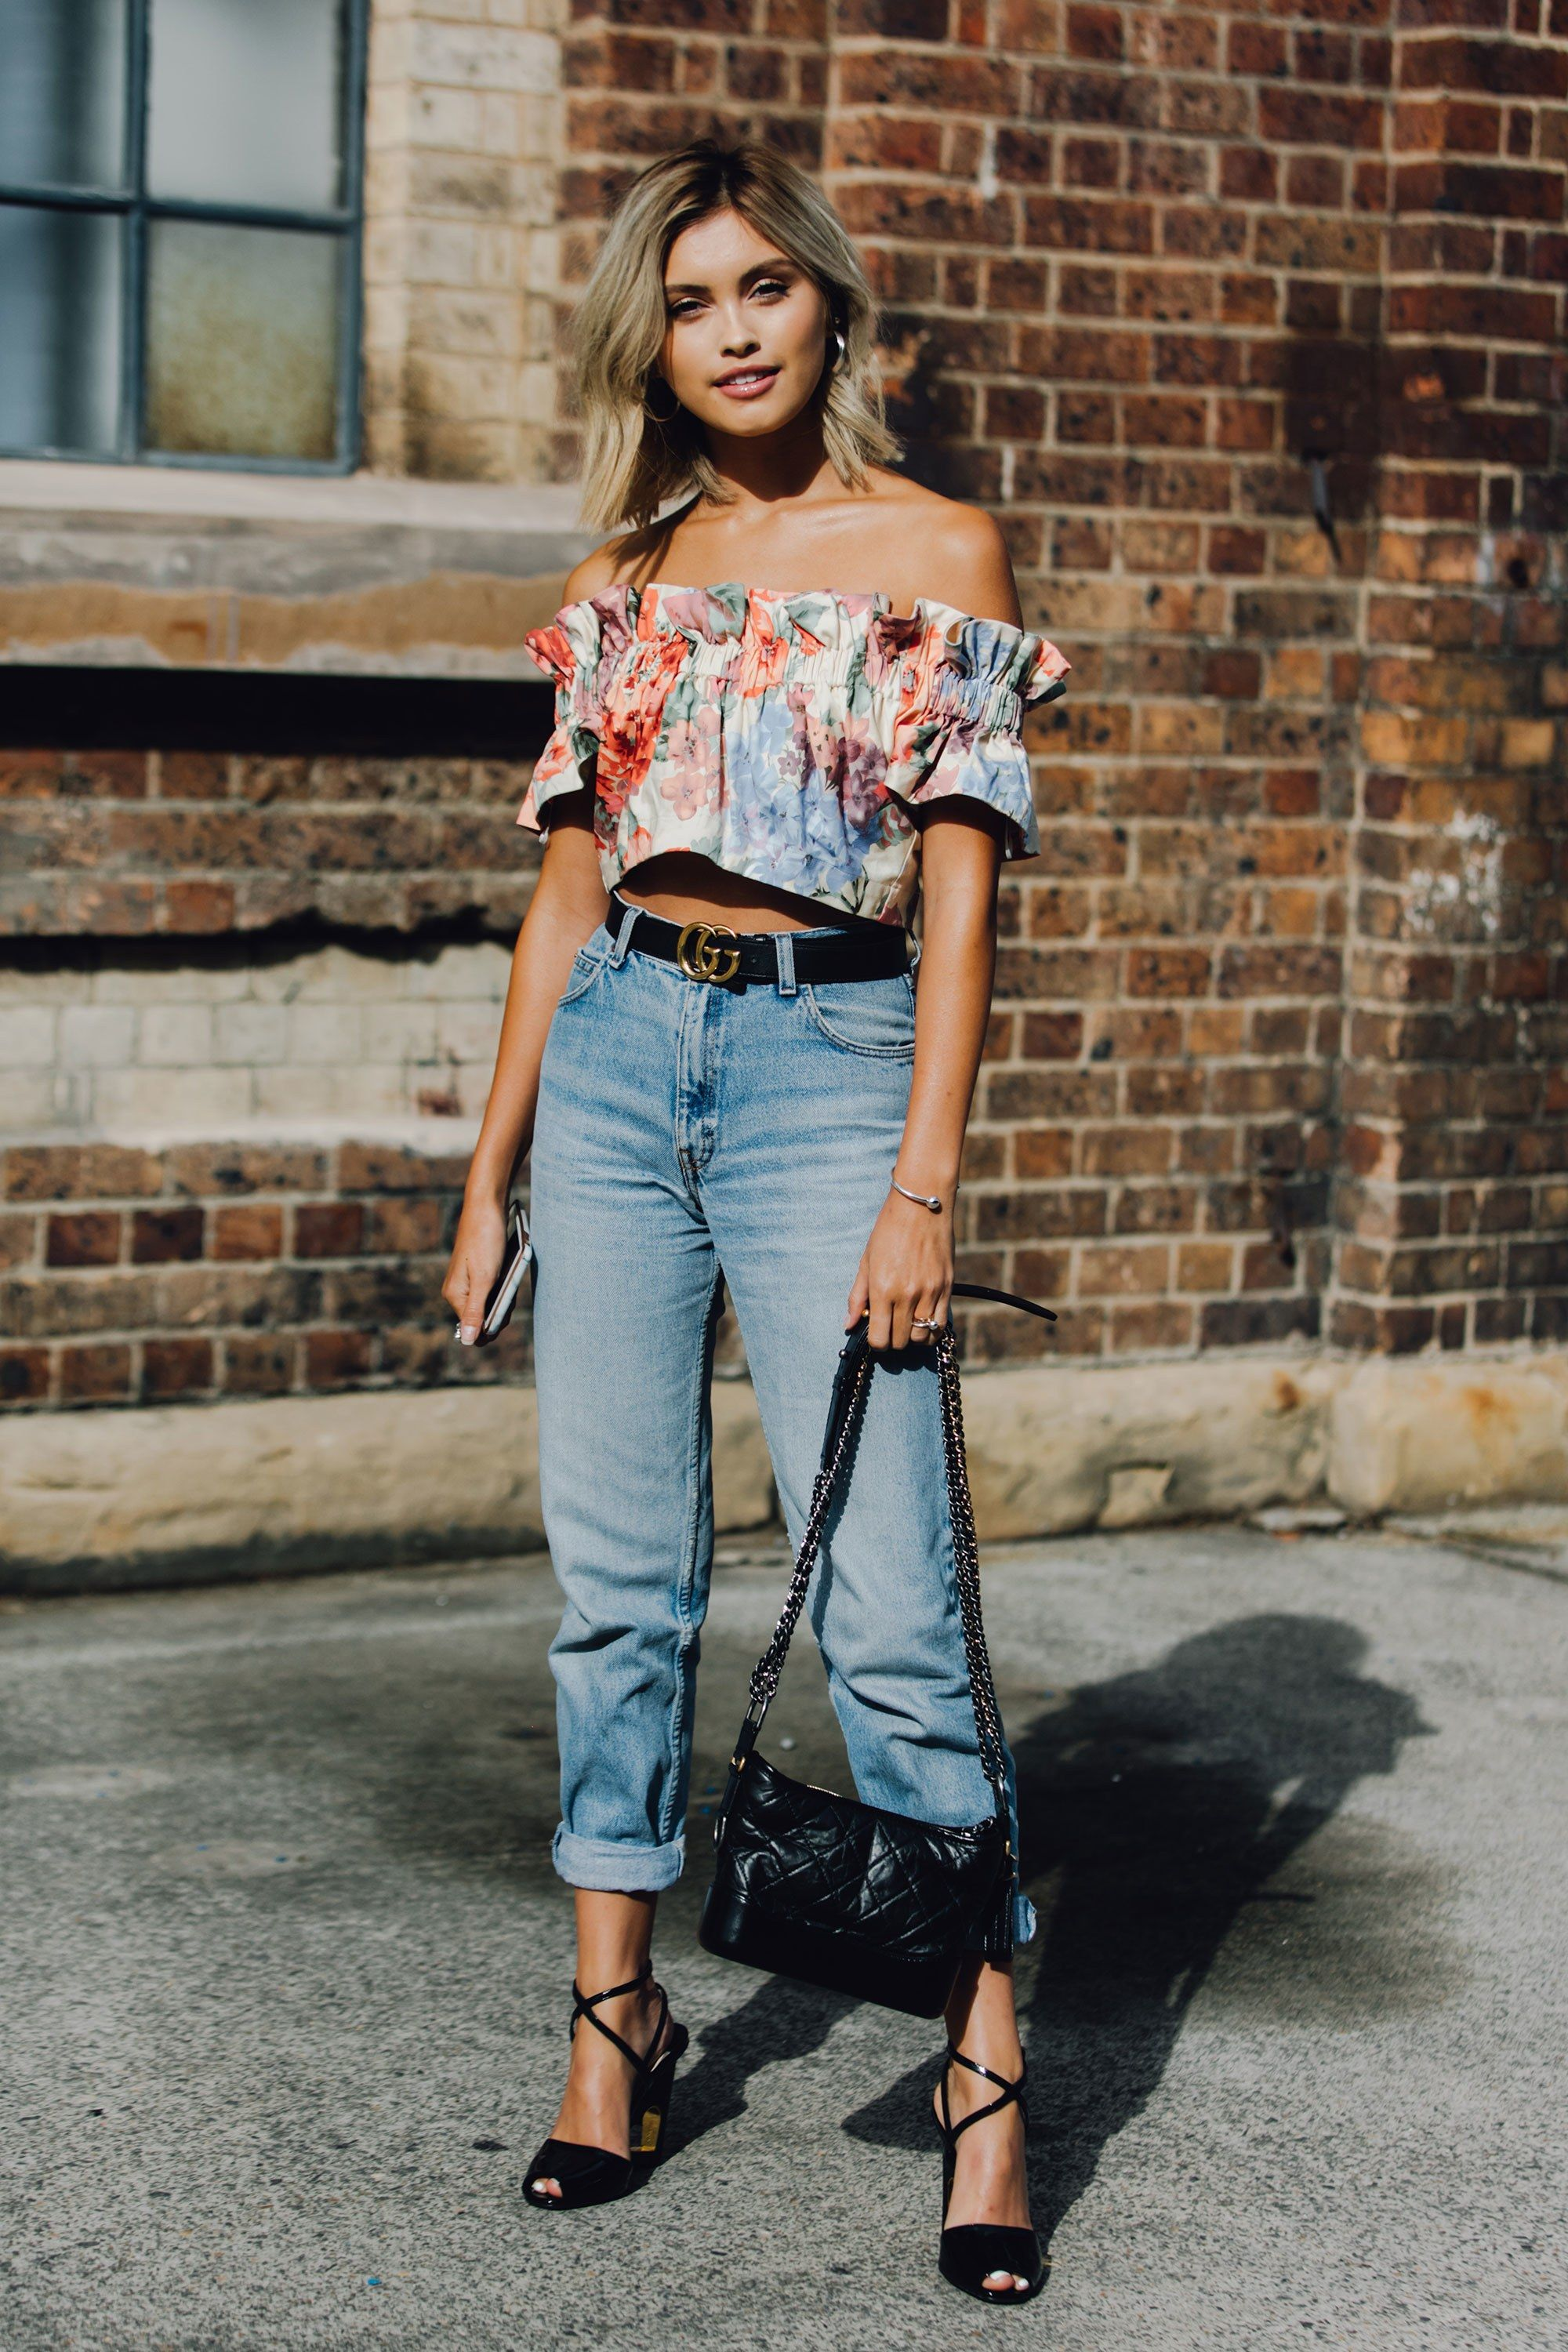 The Best Street Style From Australian Fashion Week 2017